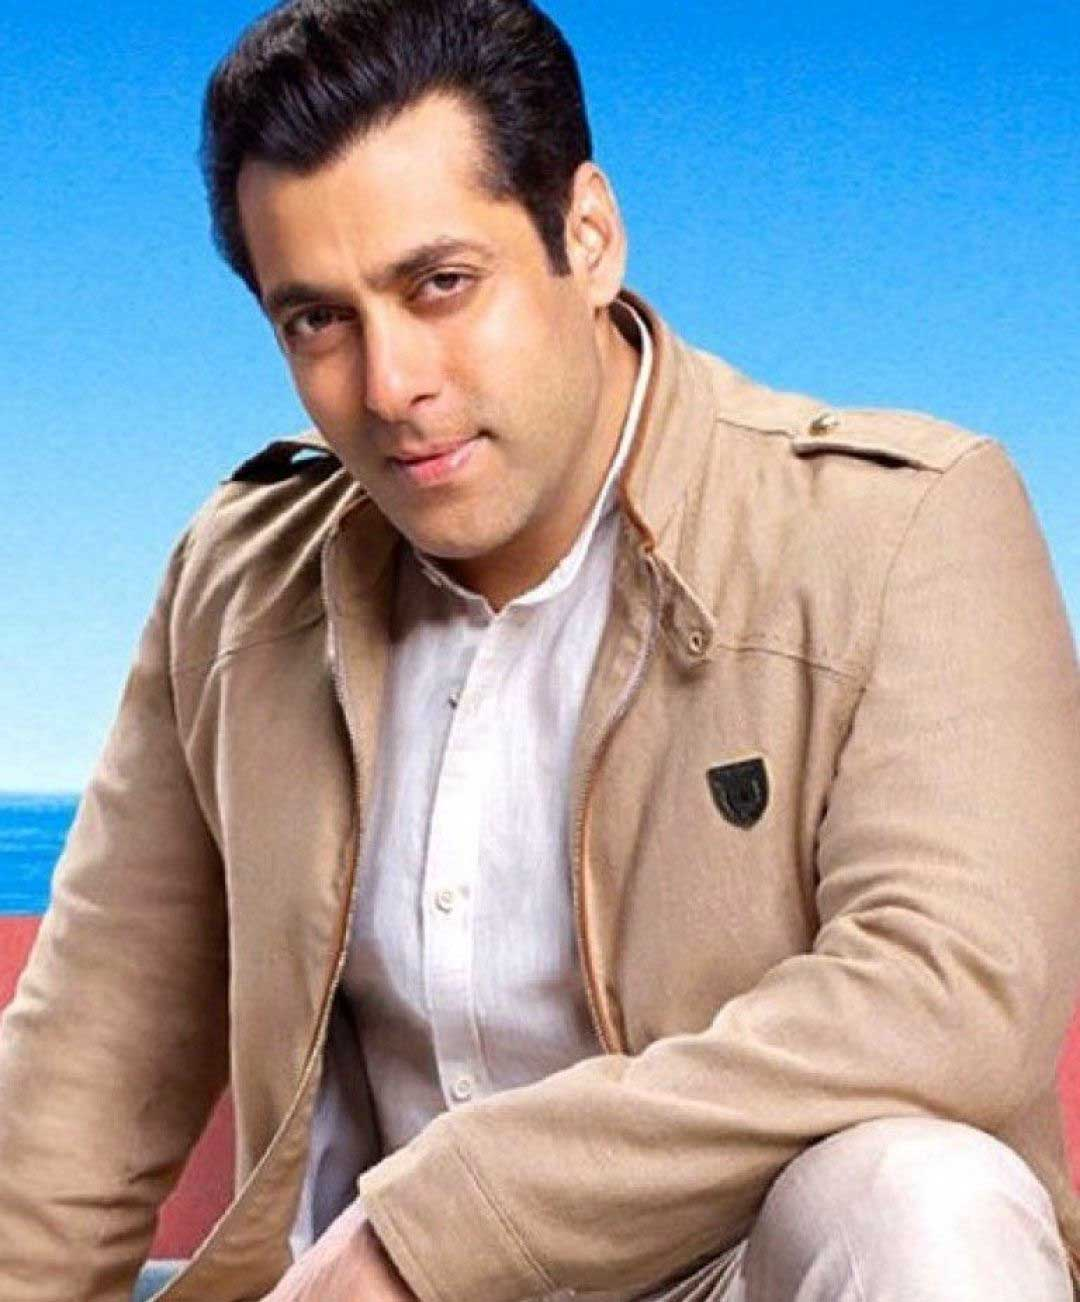 Salman Khan Images HD Free 63